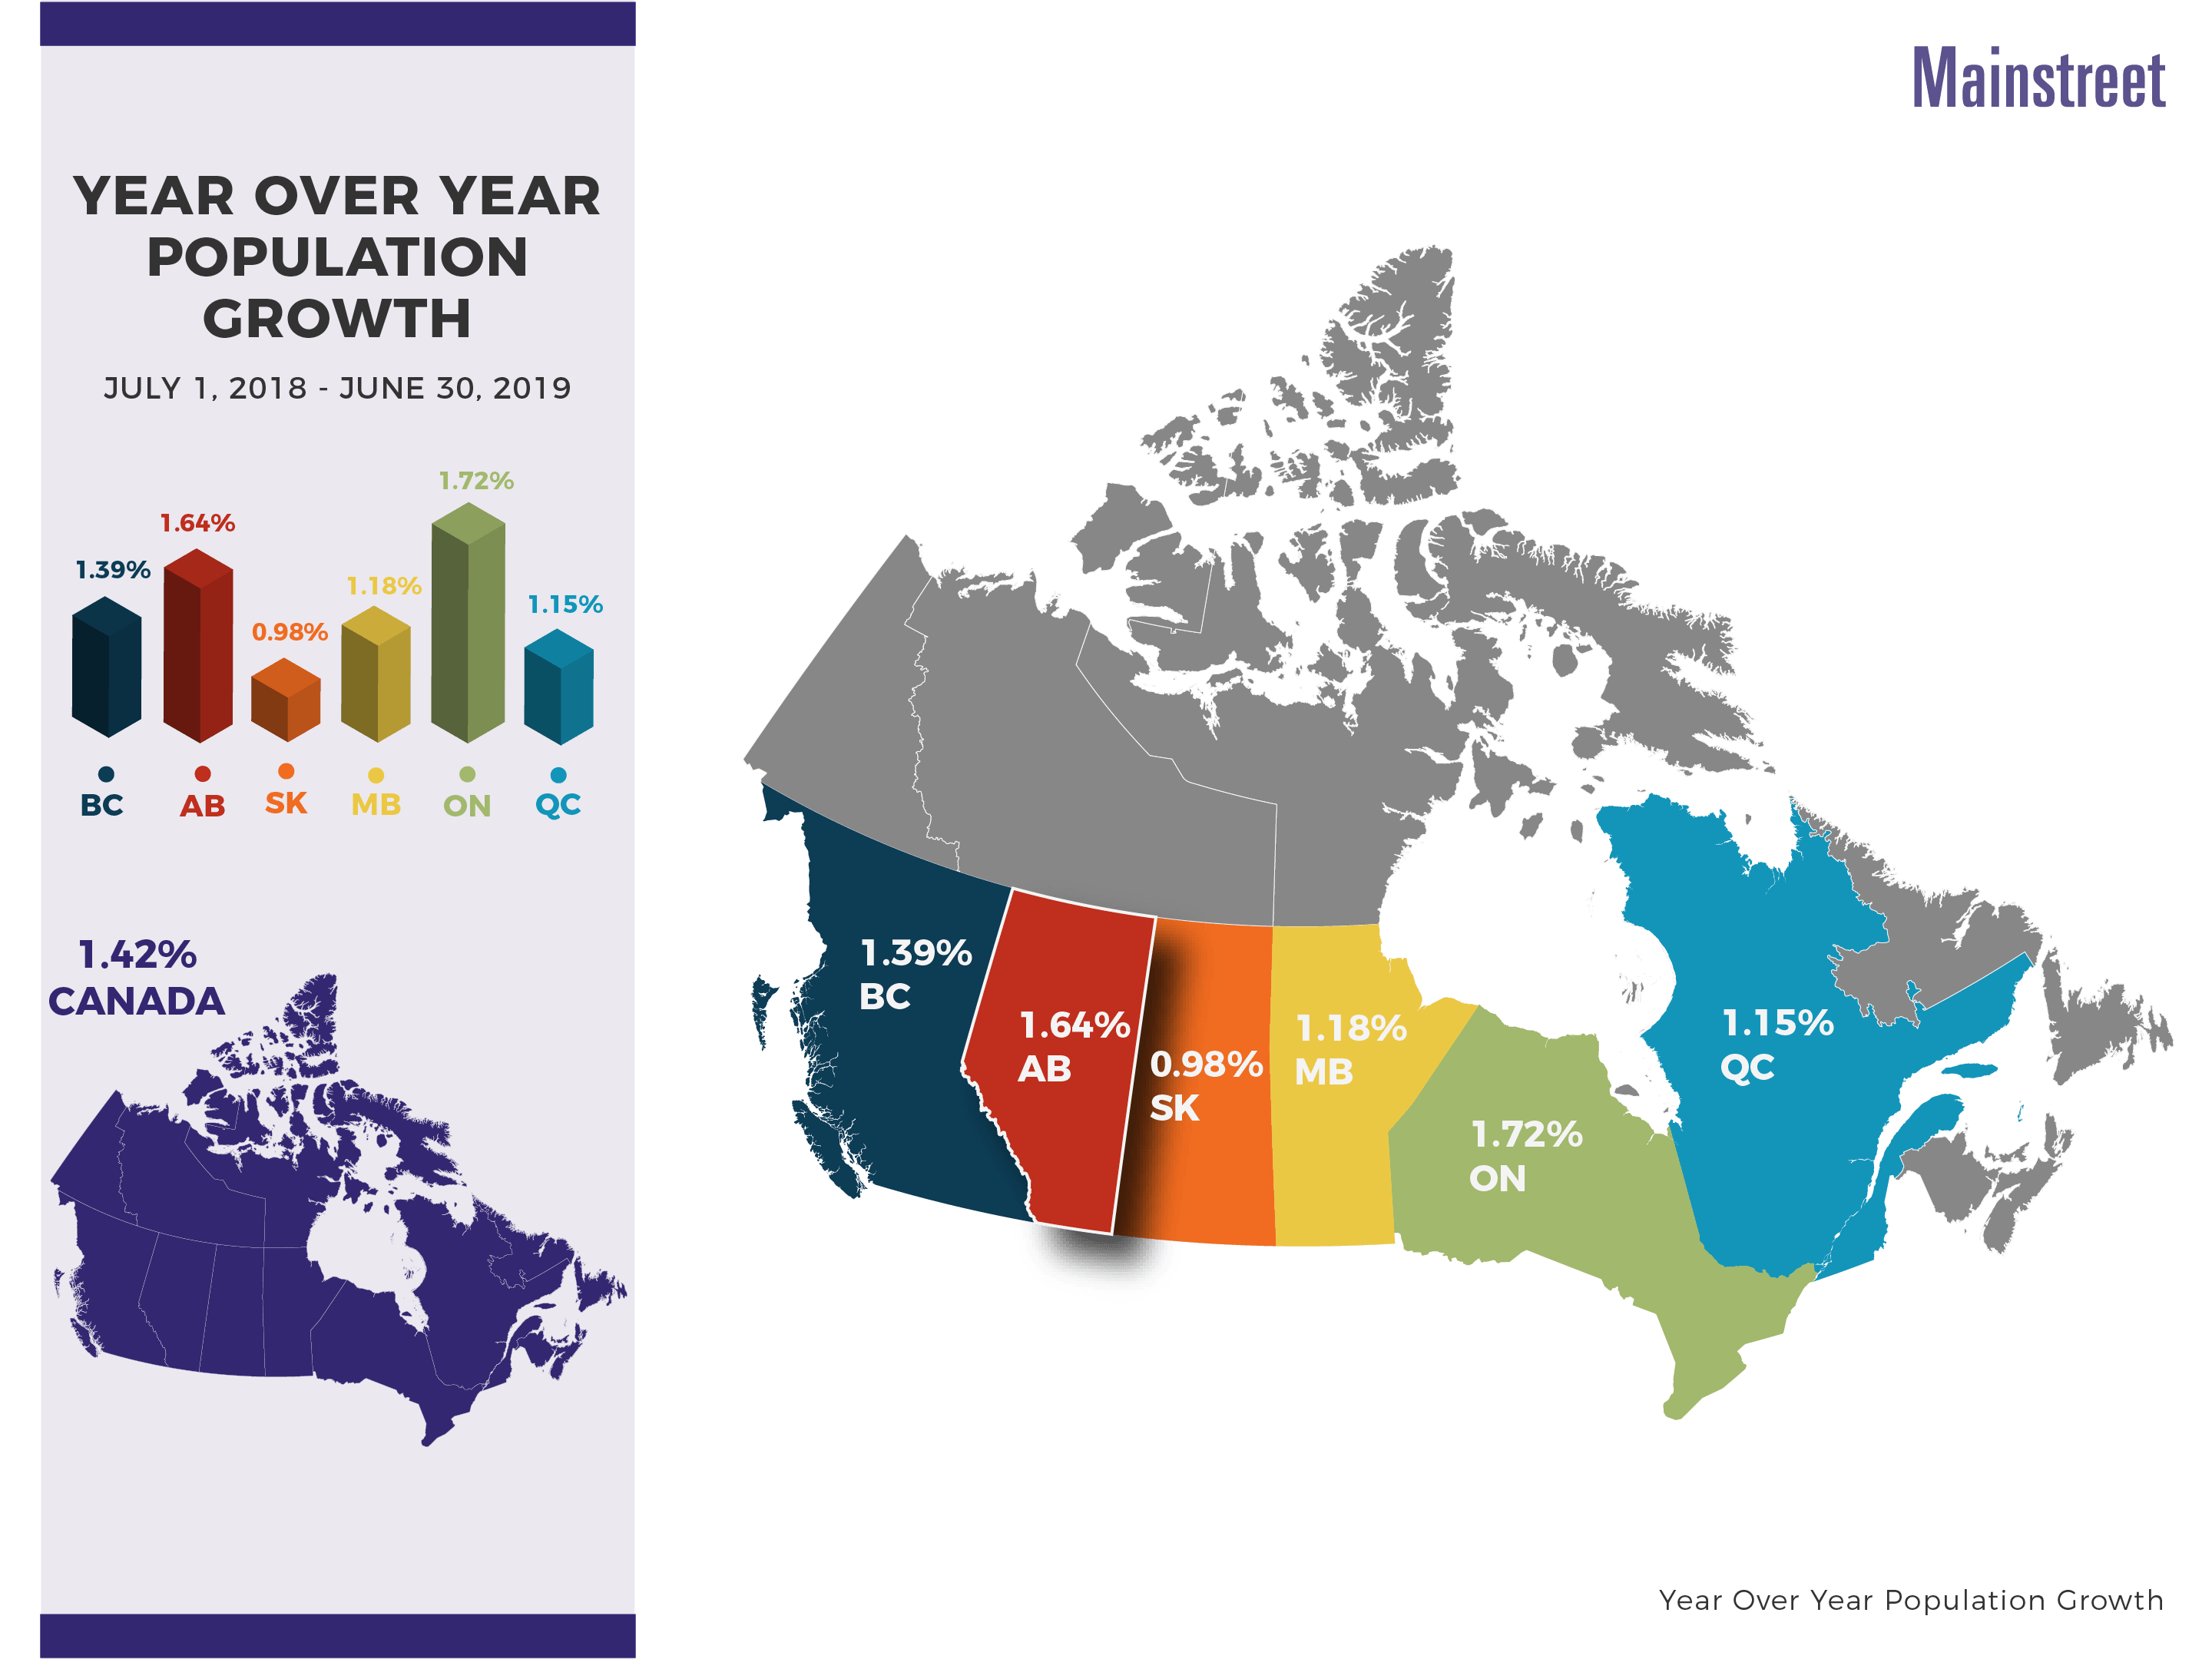 Mainstreet Equity Alberta & Canada Population Growth